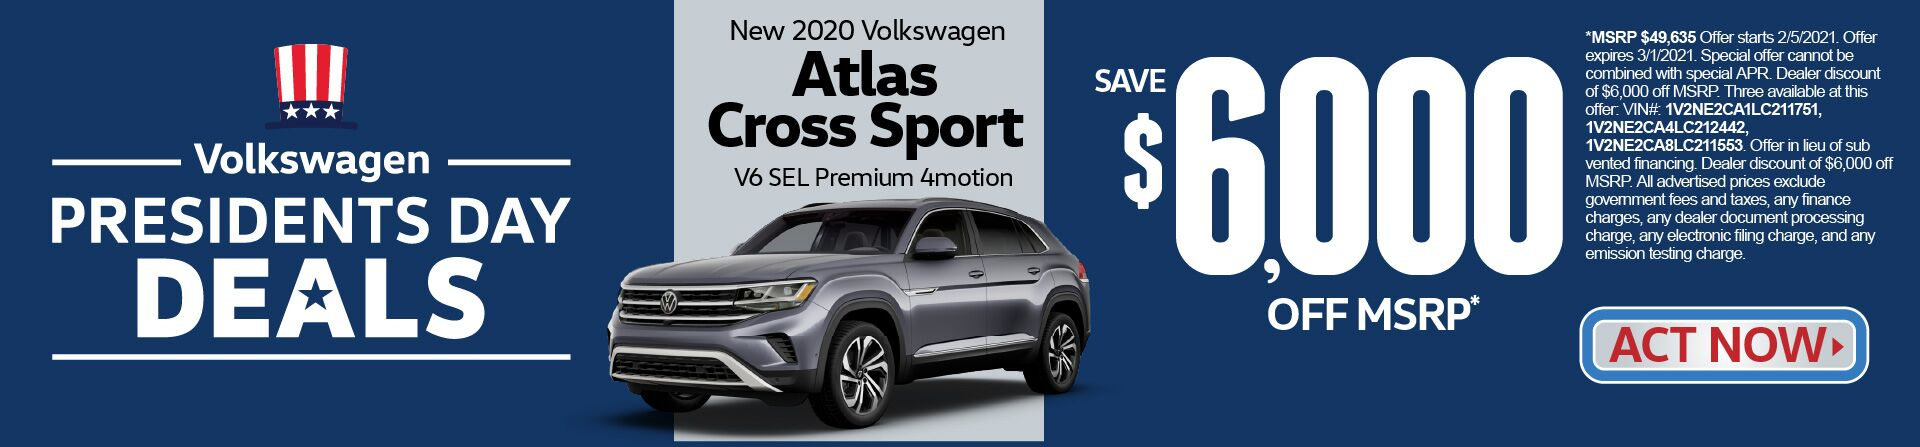 New 2020 VW Atlas Cross Sport save $6,000 off msrp | Act Now